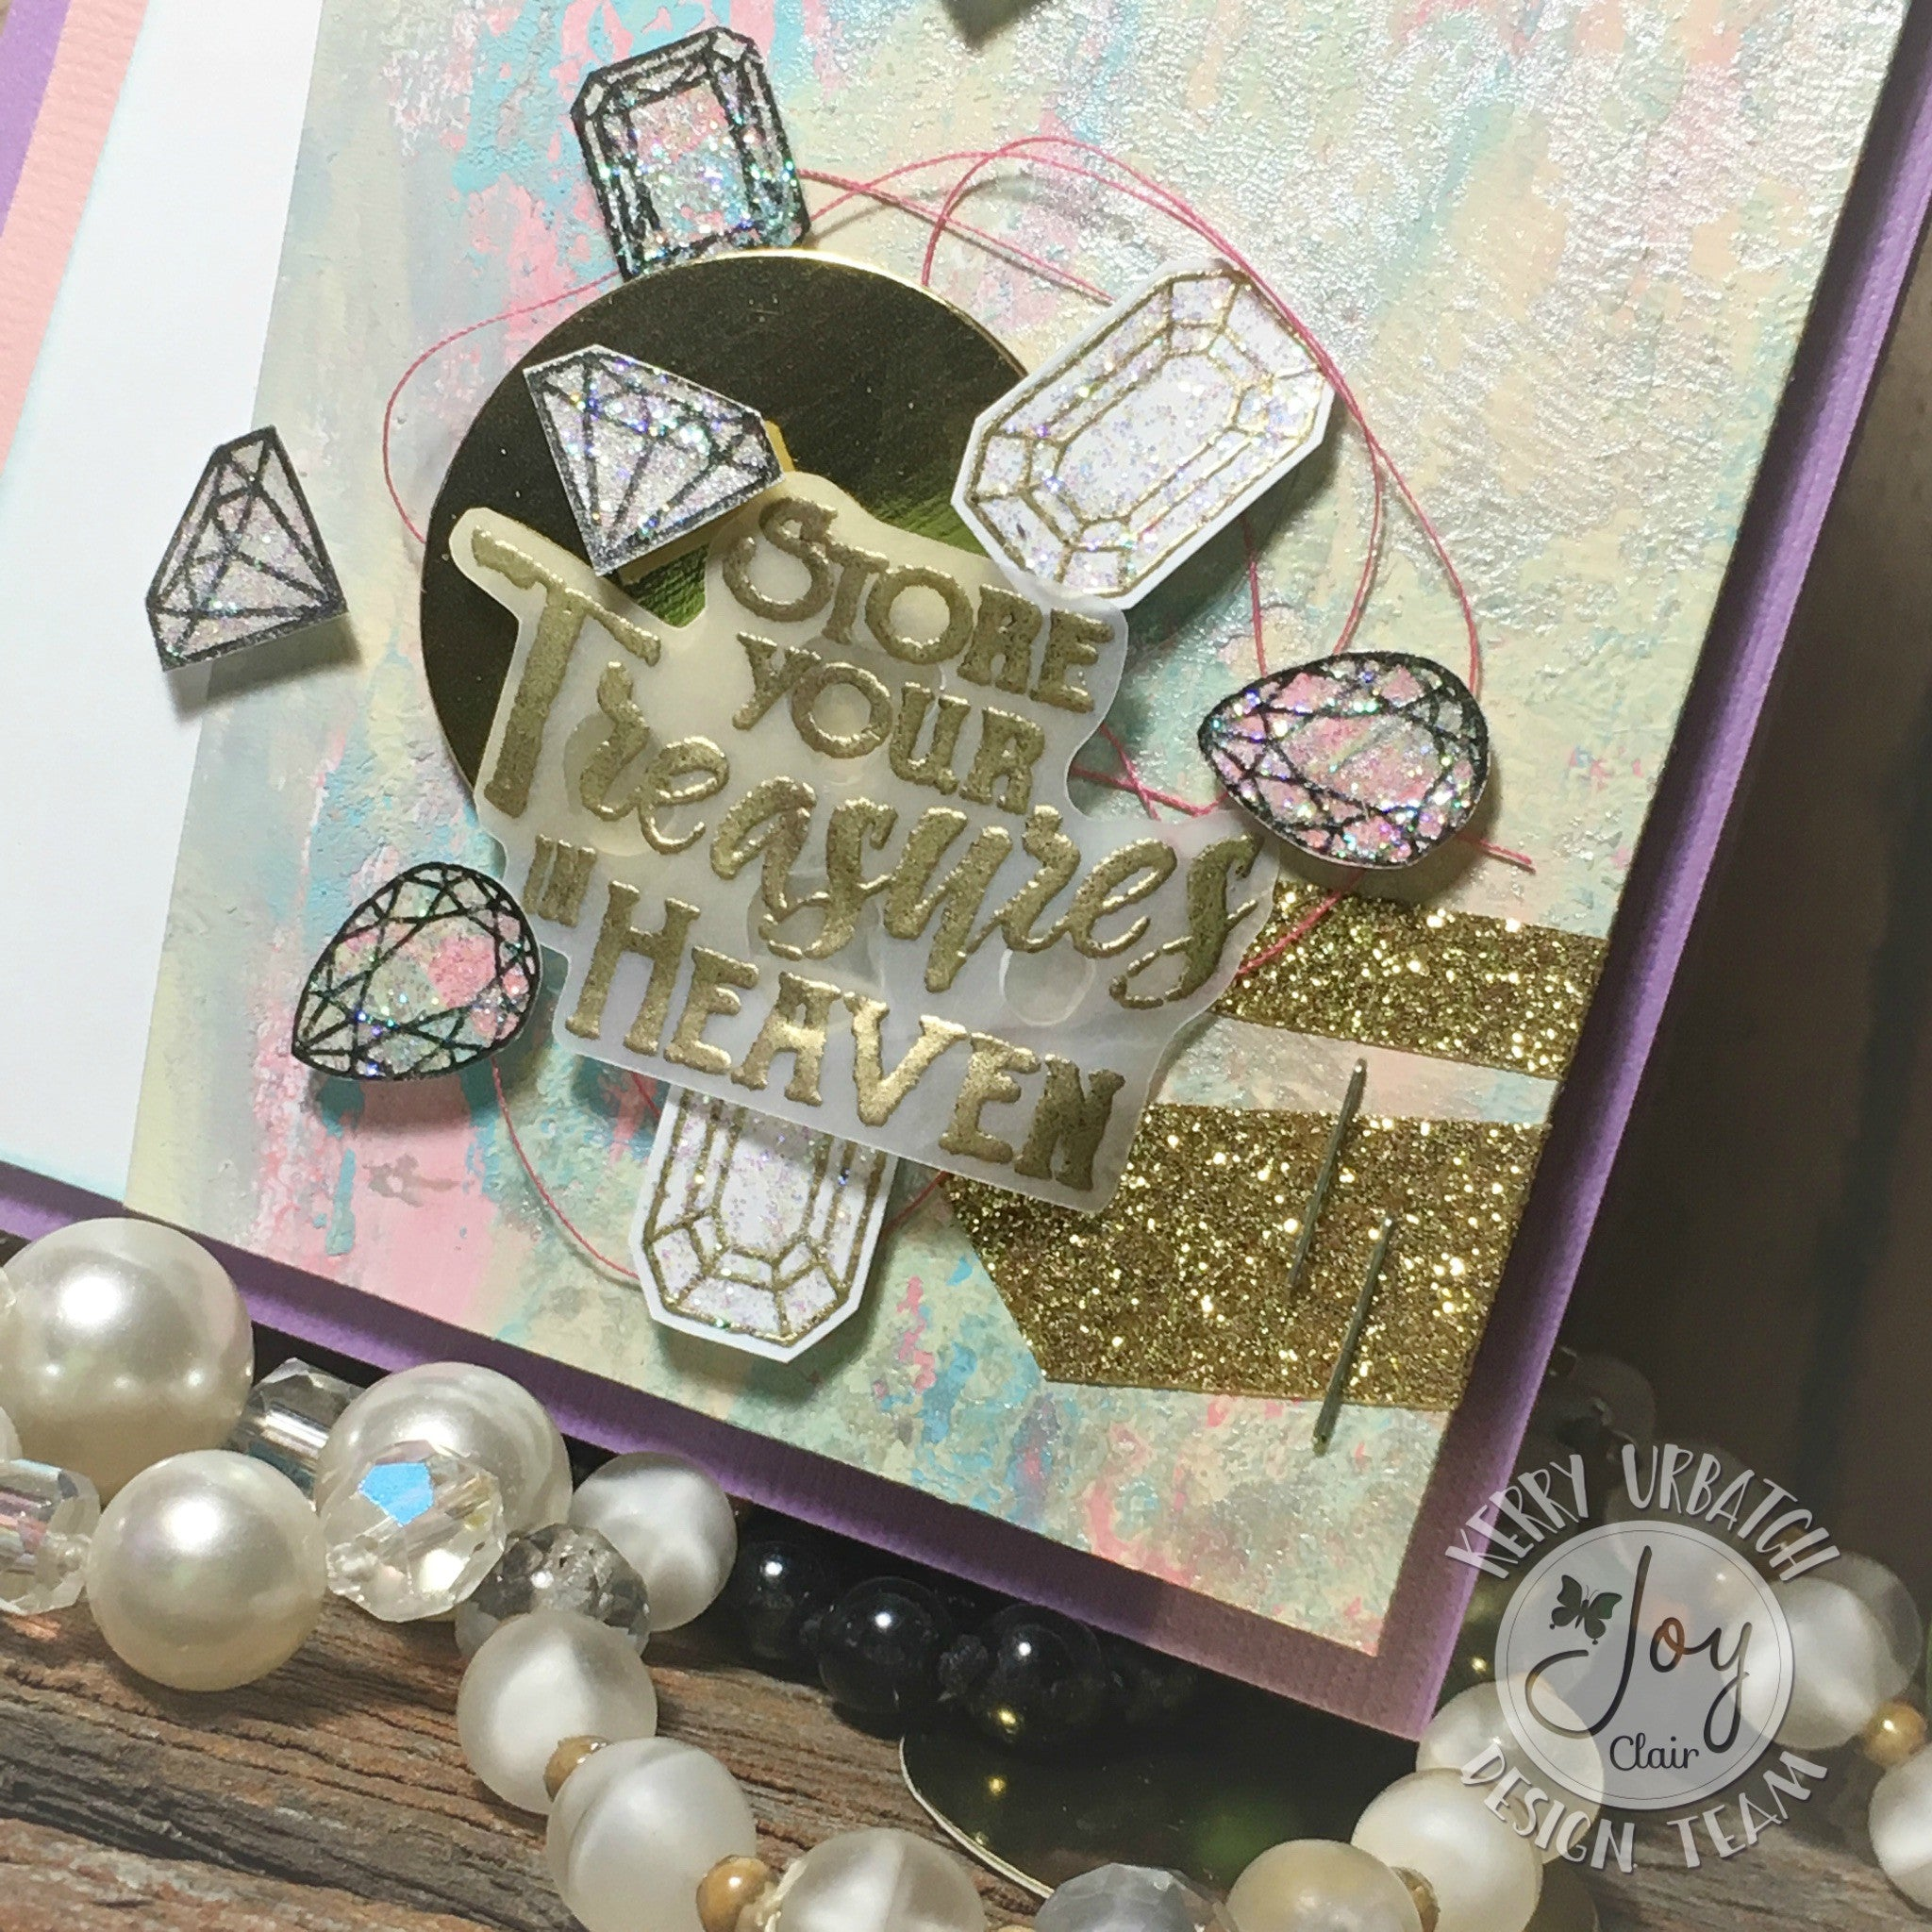 Clear Stamps - God's Treasure | Bible Journaling Clear Stamps - Joy Clair - 11